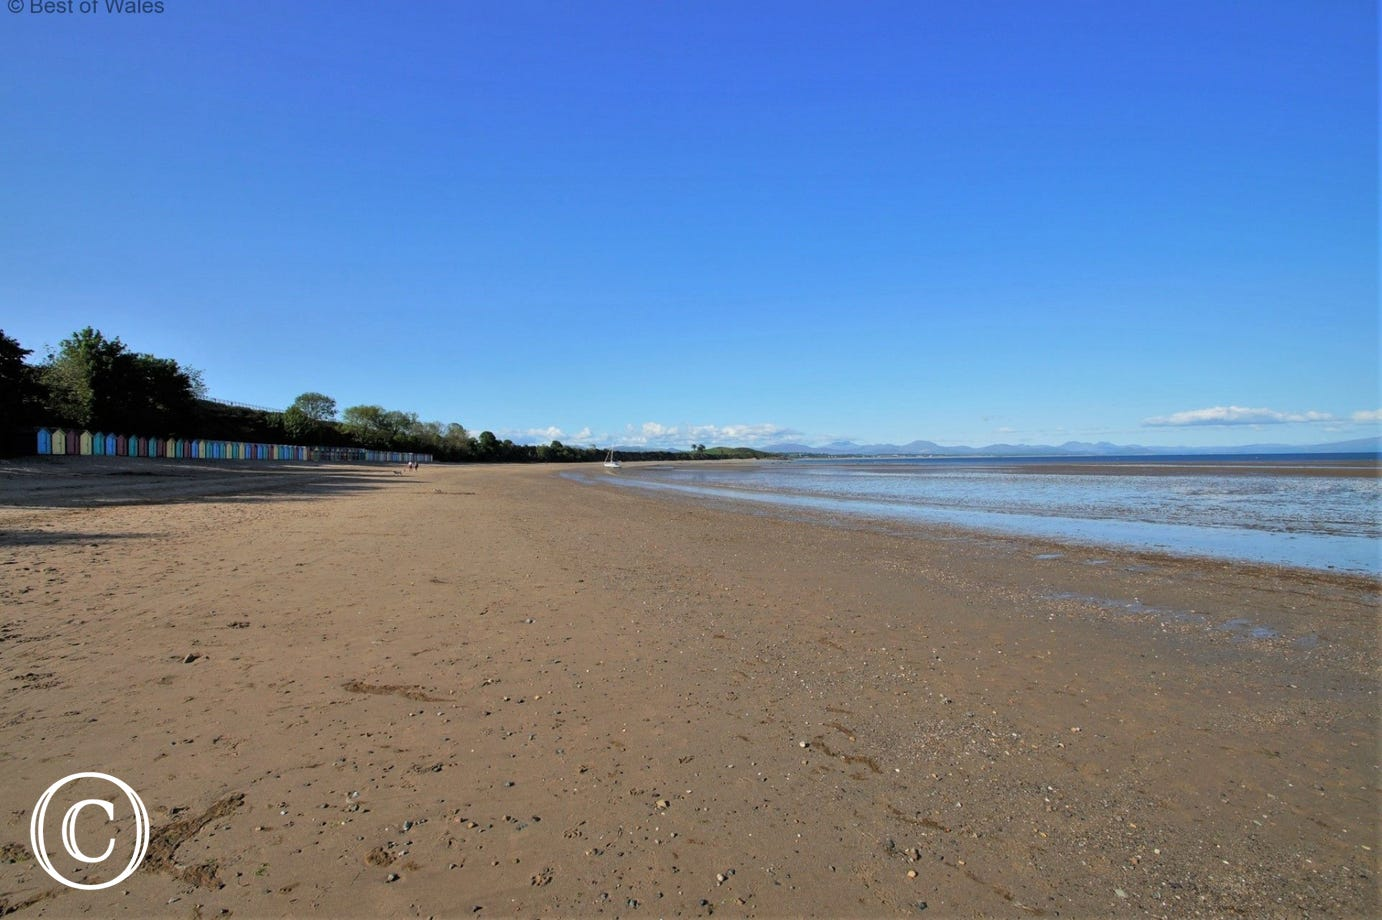 Llanbedrog Beach - a mile long sandy beach with a cafe and huts.